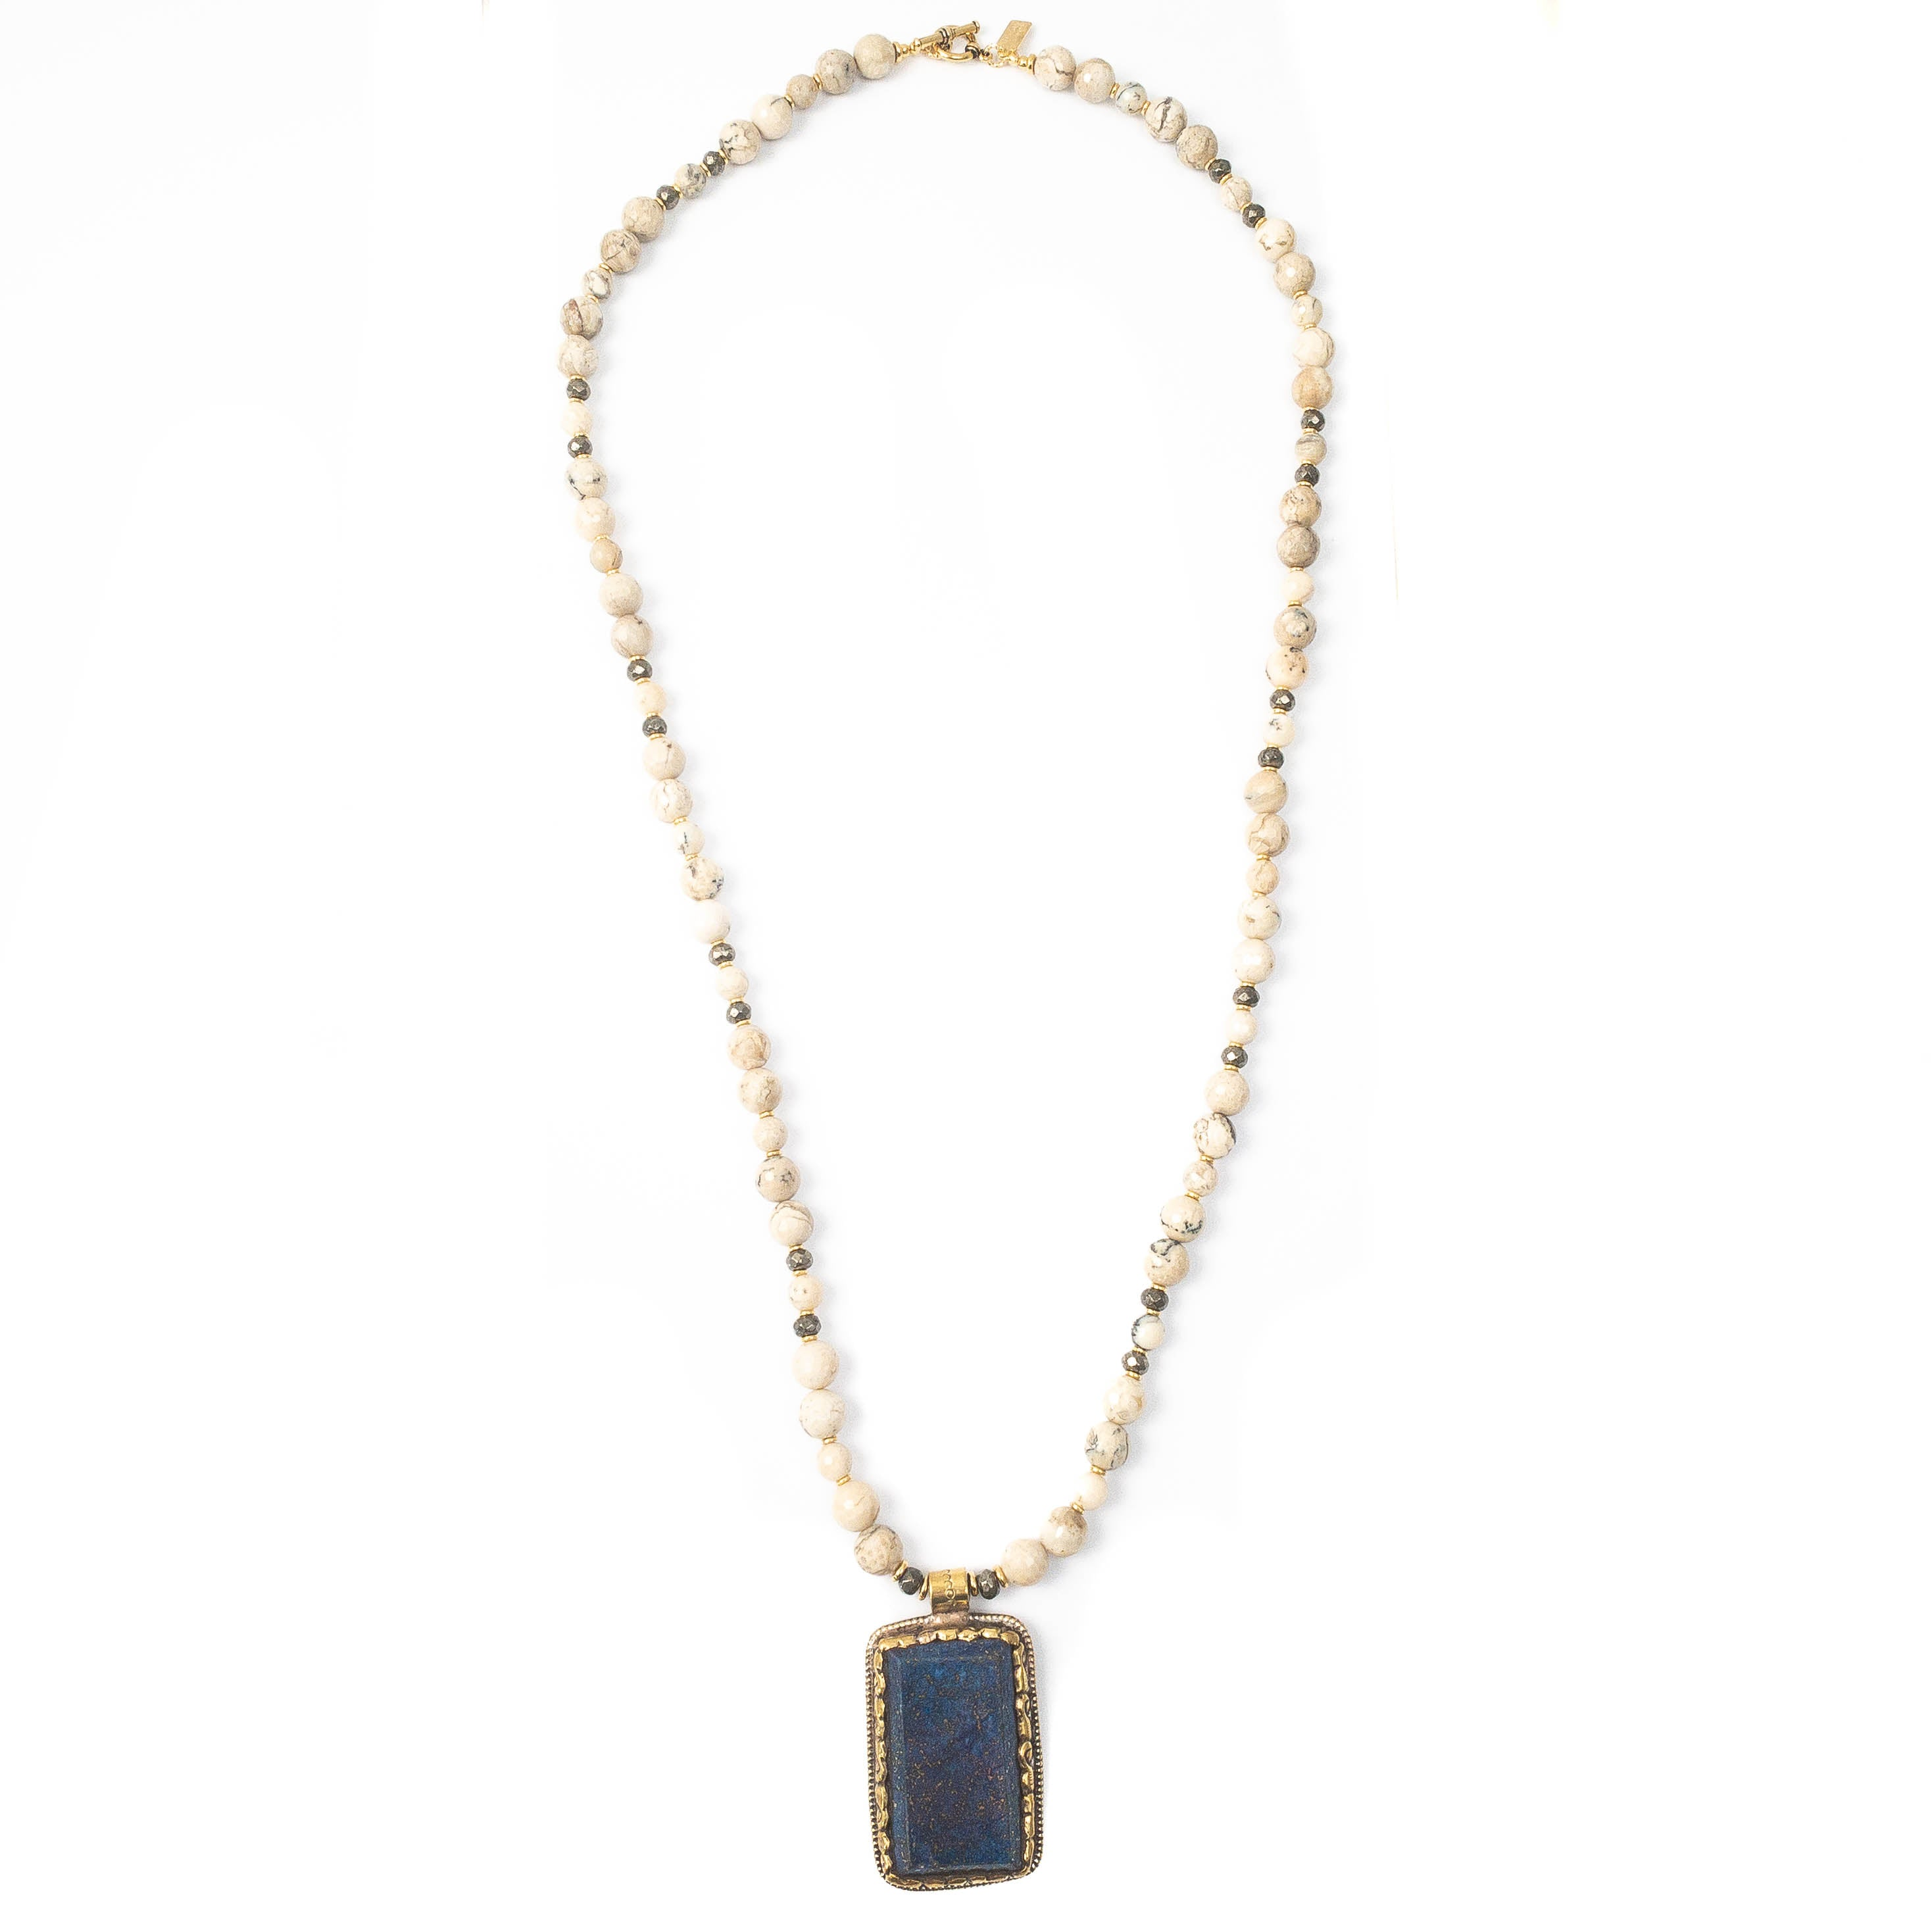 Nepali Repousse Lapis Pendant on African Opal Necklace